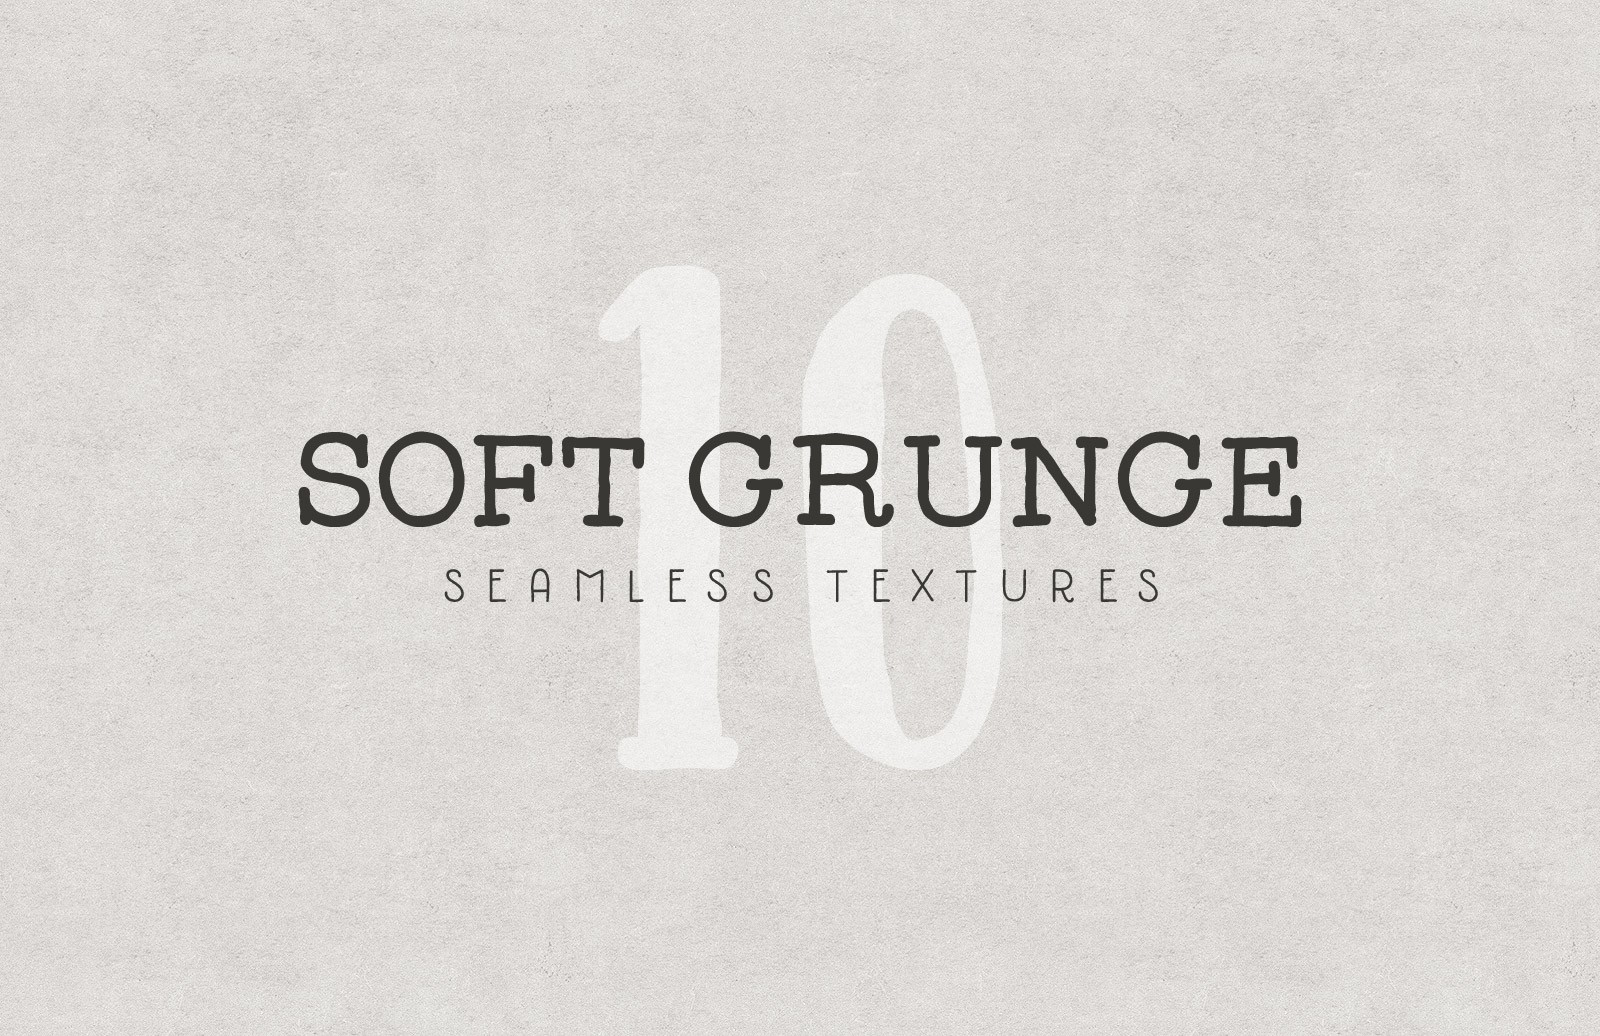 Seamless  Soft  Grunge  Textures  Preview 1